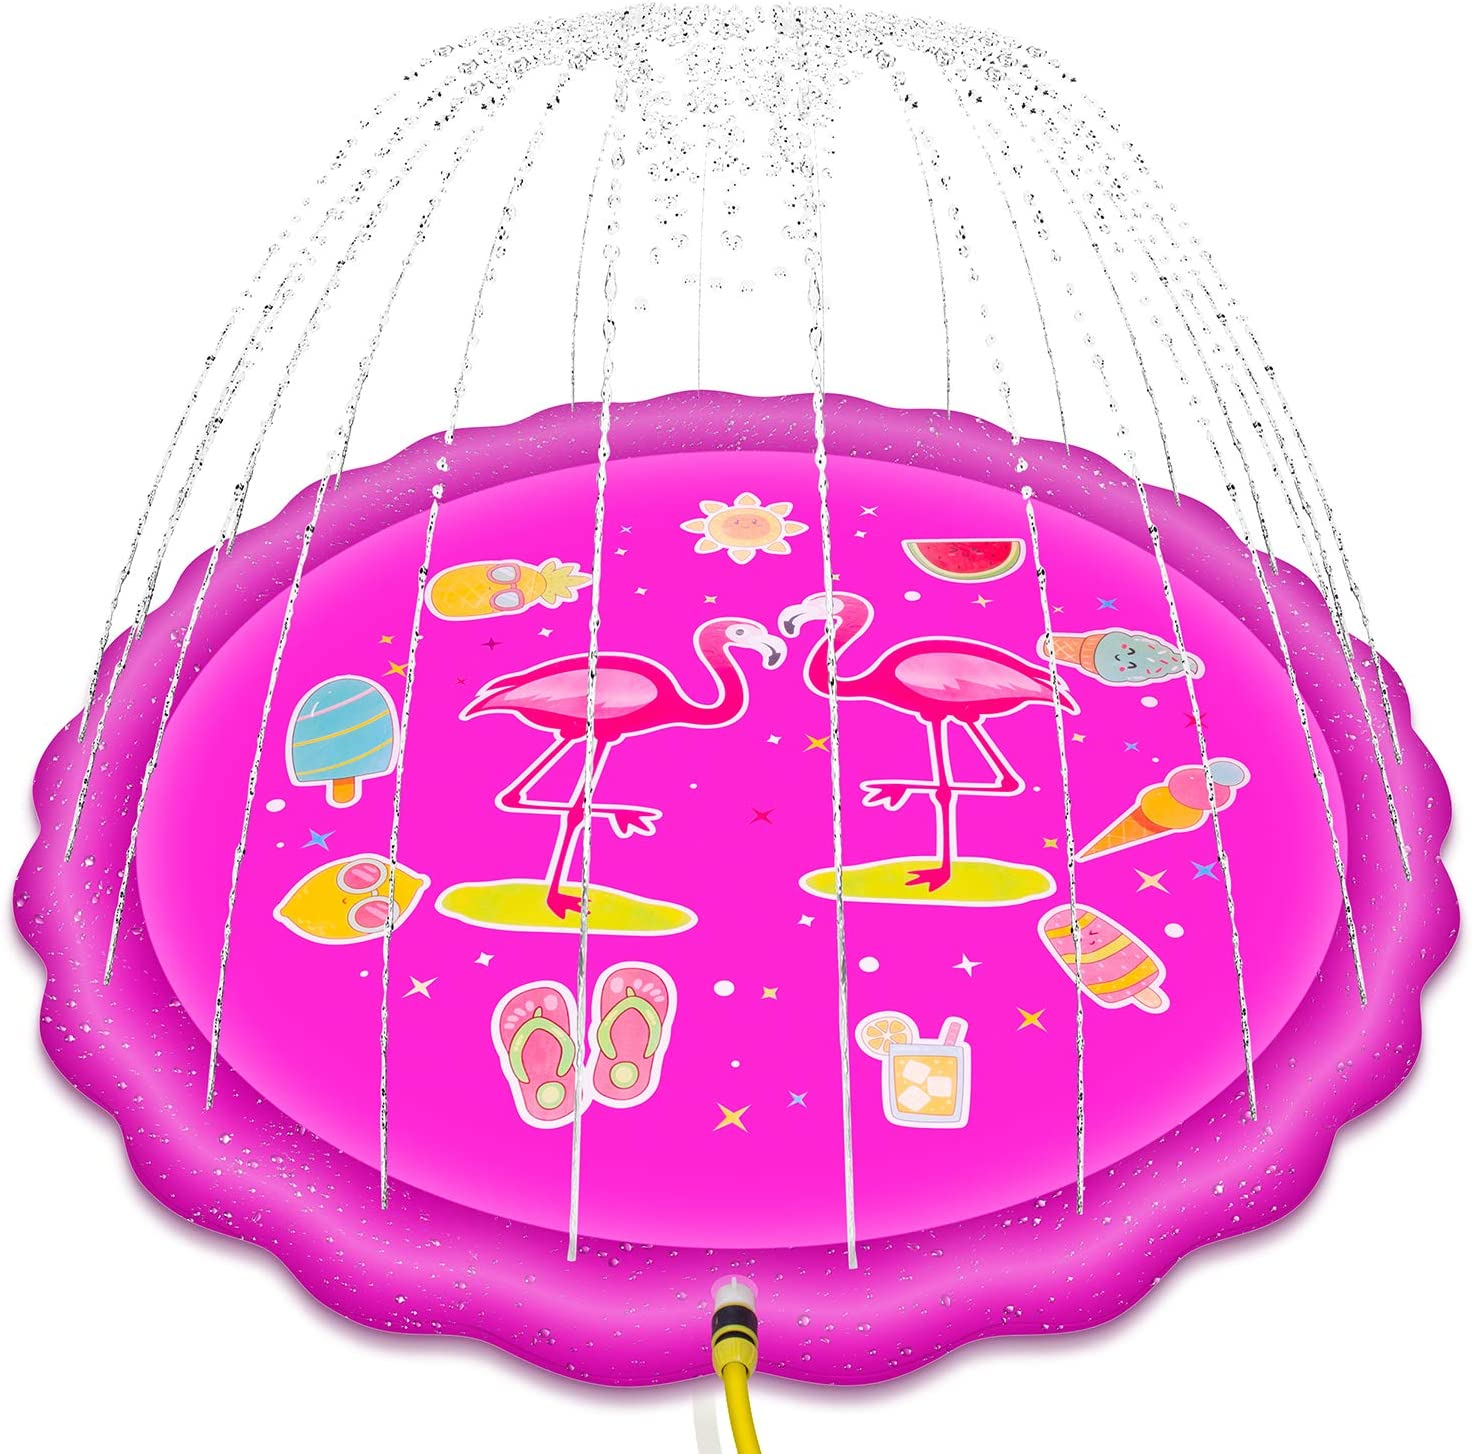 """Tyhocent Sprinkler for Kids, 68"""" Inflatable Splash Pad & Wading Pool for Kids, Flamingo Pattern Summer Fun Backyard Fountain Play Mat – Outdoor Kiddie Pool for Babies & Toddlers"""